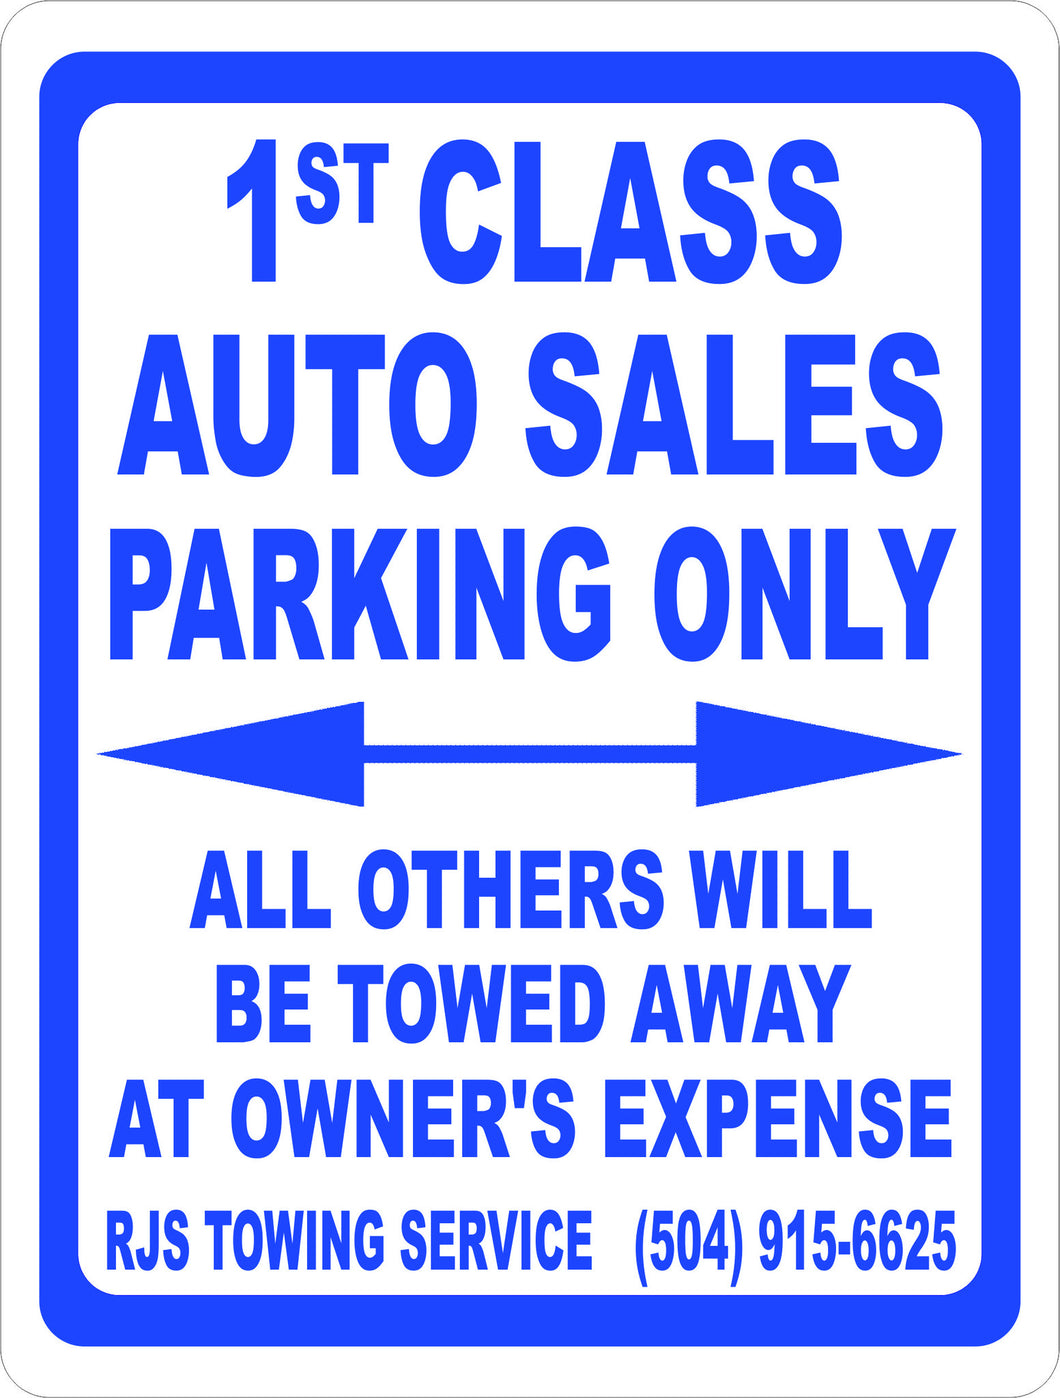 Custom Your Business Parking Only Sign All Others Will Be Towed - Towing Company Info - Signs & Decals by SalaGraphics